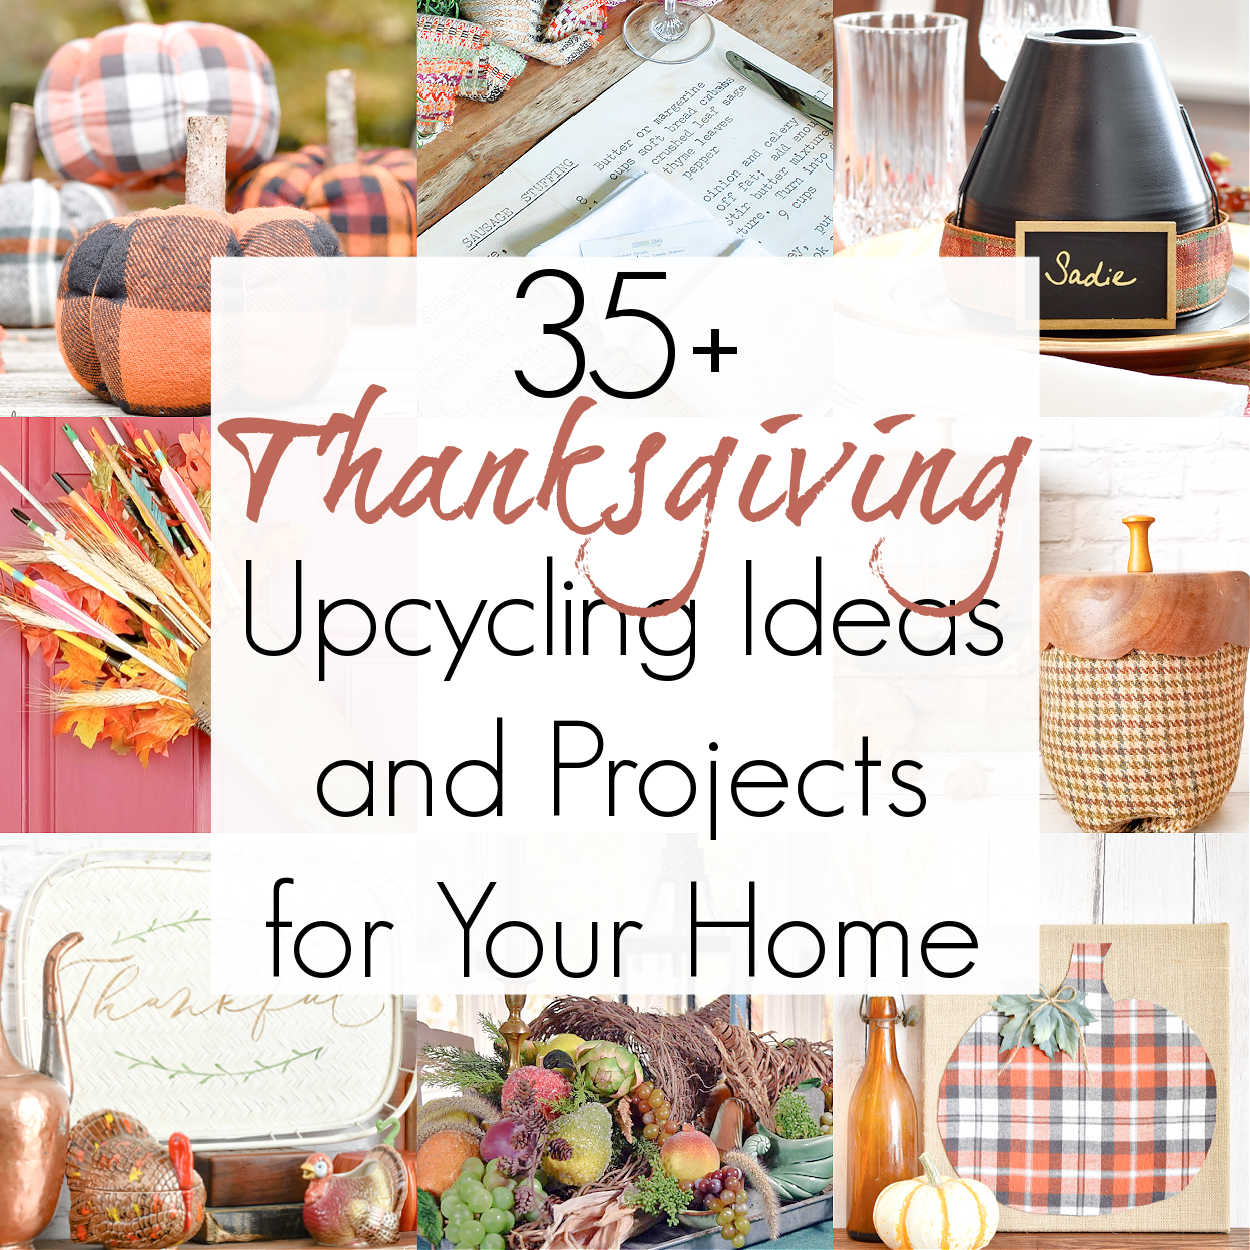 35+ Upcycling Ideas with a Thanksgiving Aesthetic